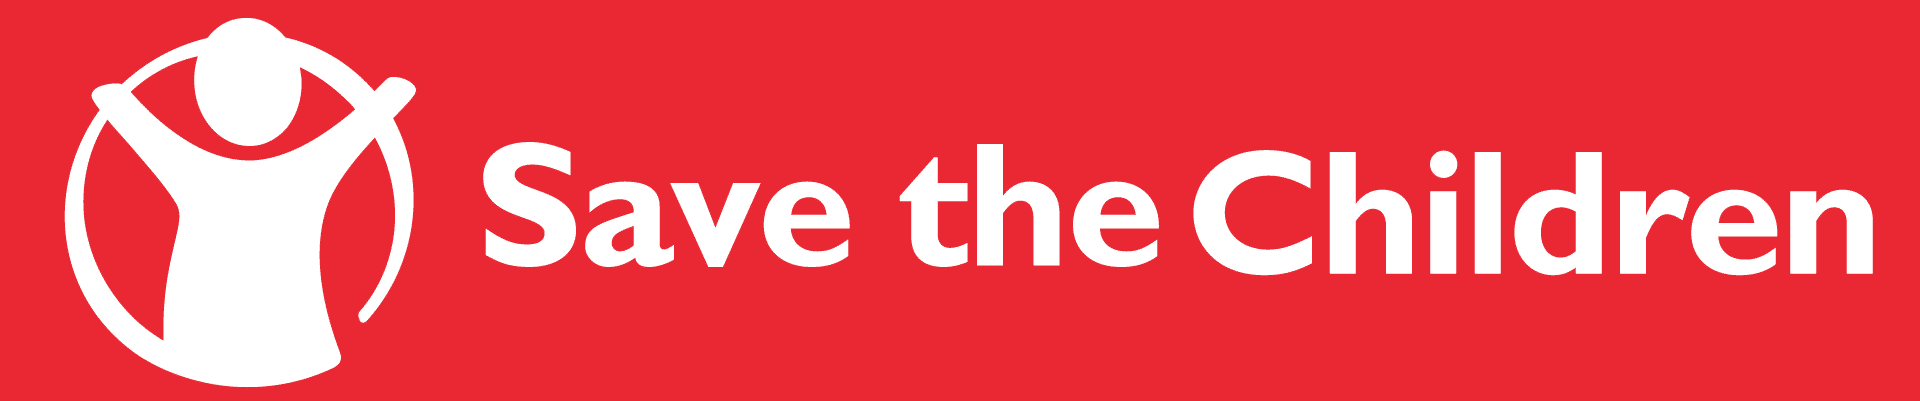 nonprofit charity logo of save the children on a red background